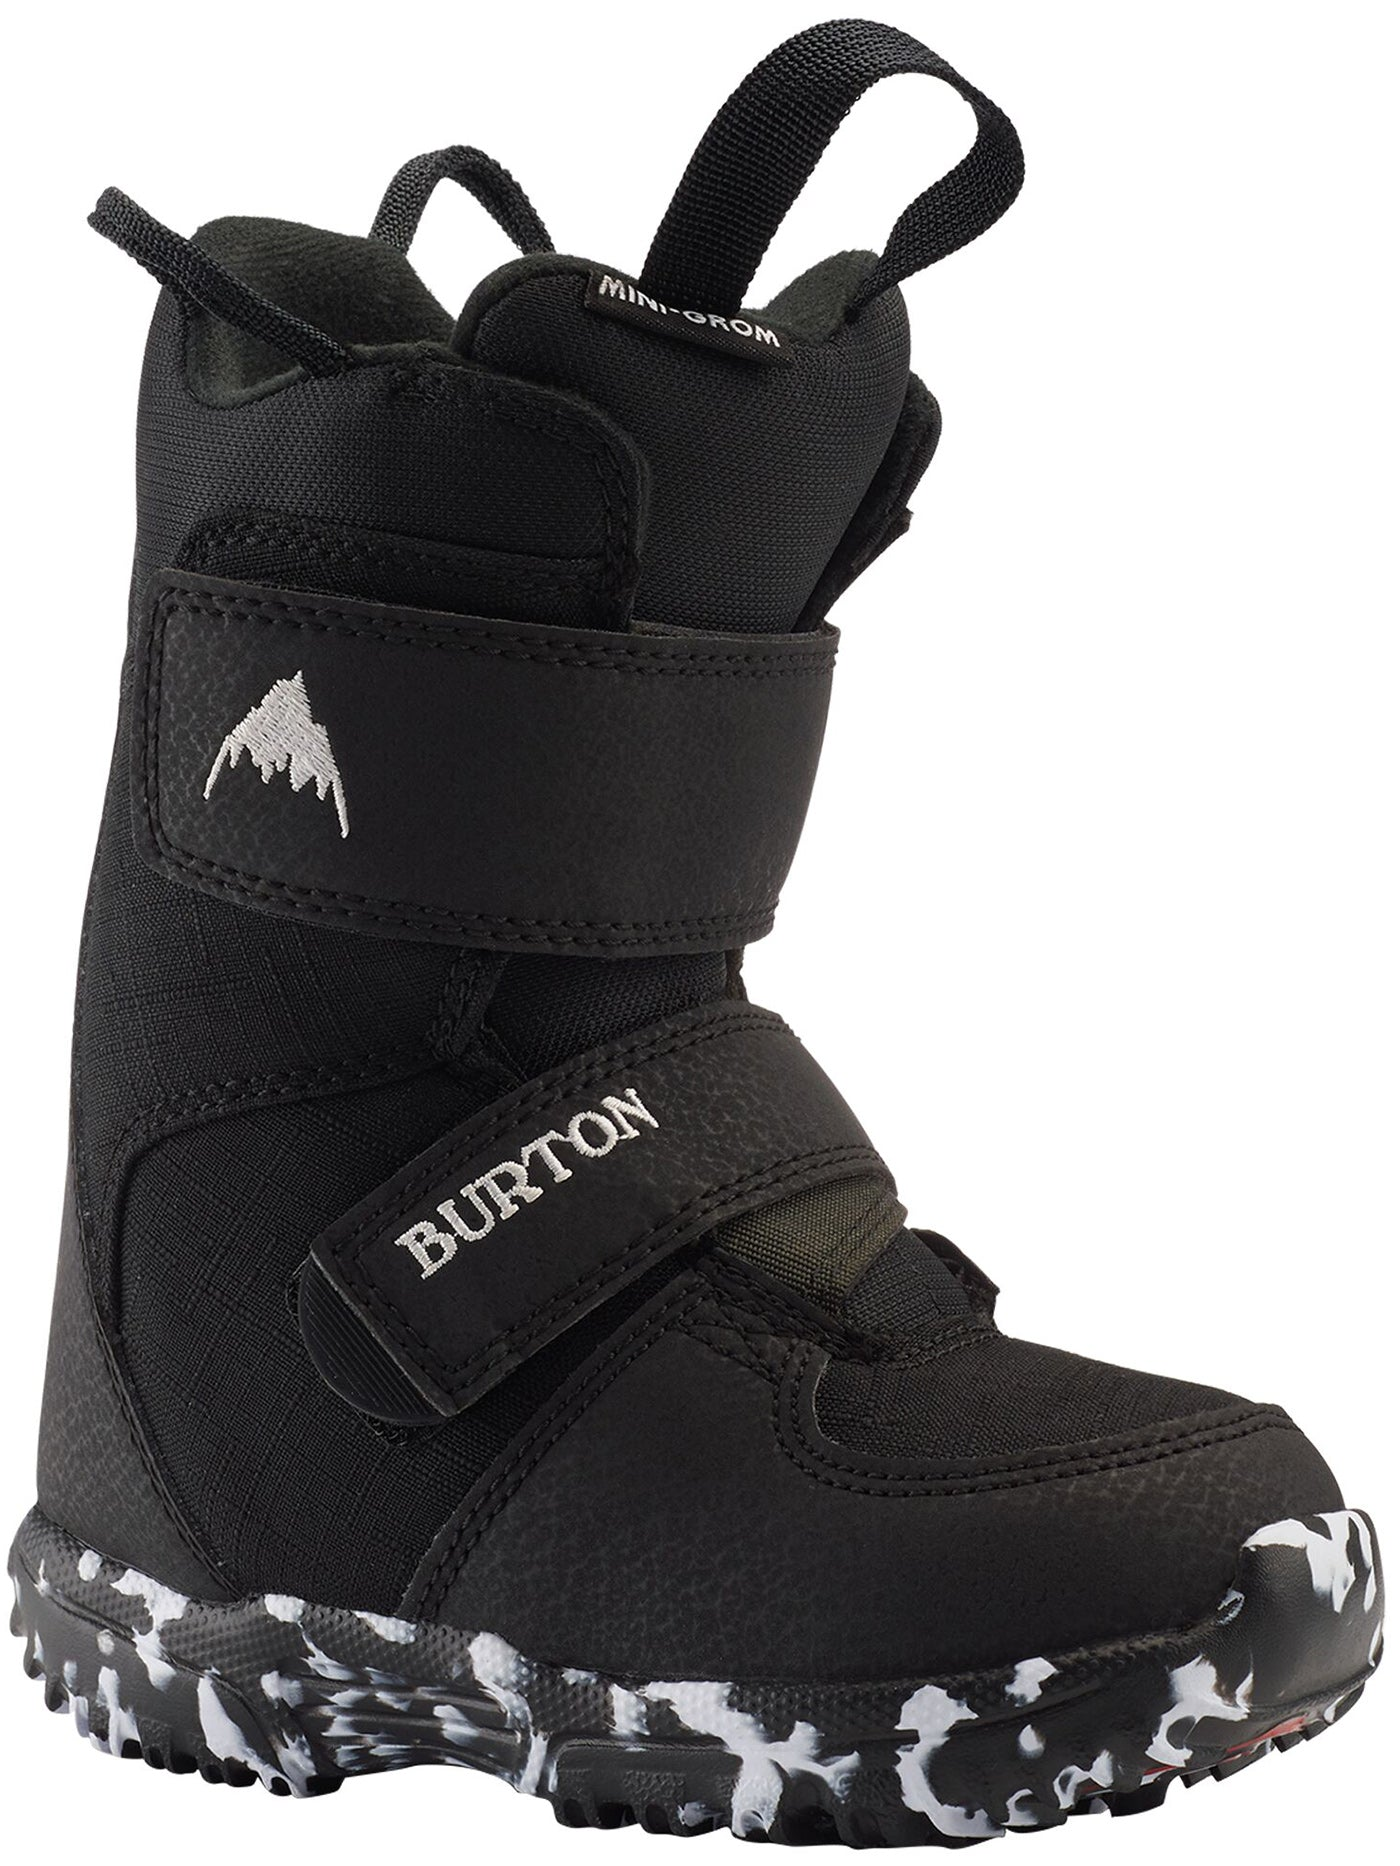 Youth Snowboard Store Empire Boots Online – cl1T3FKJ